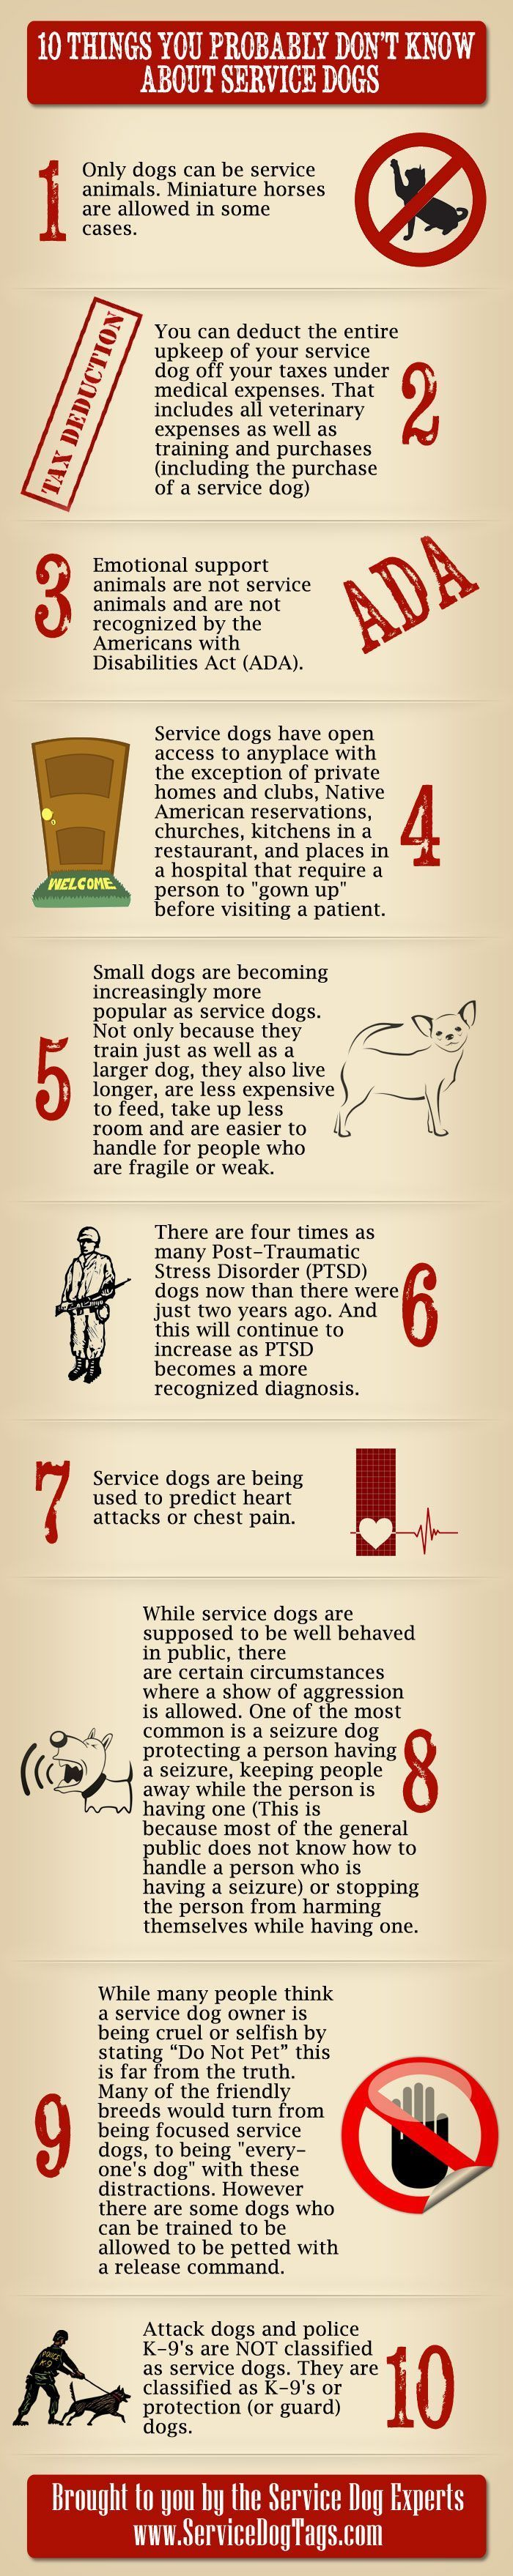 This service dog infographic includes information about ...